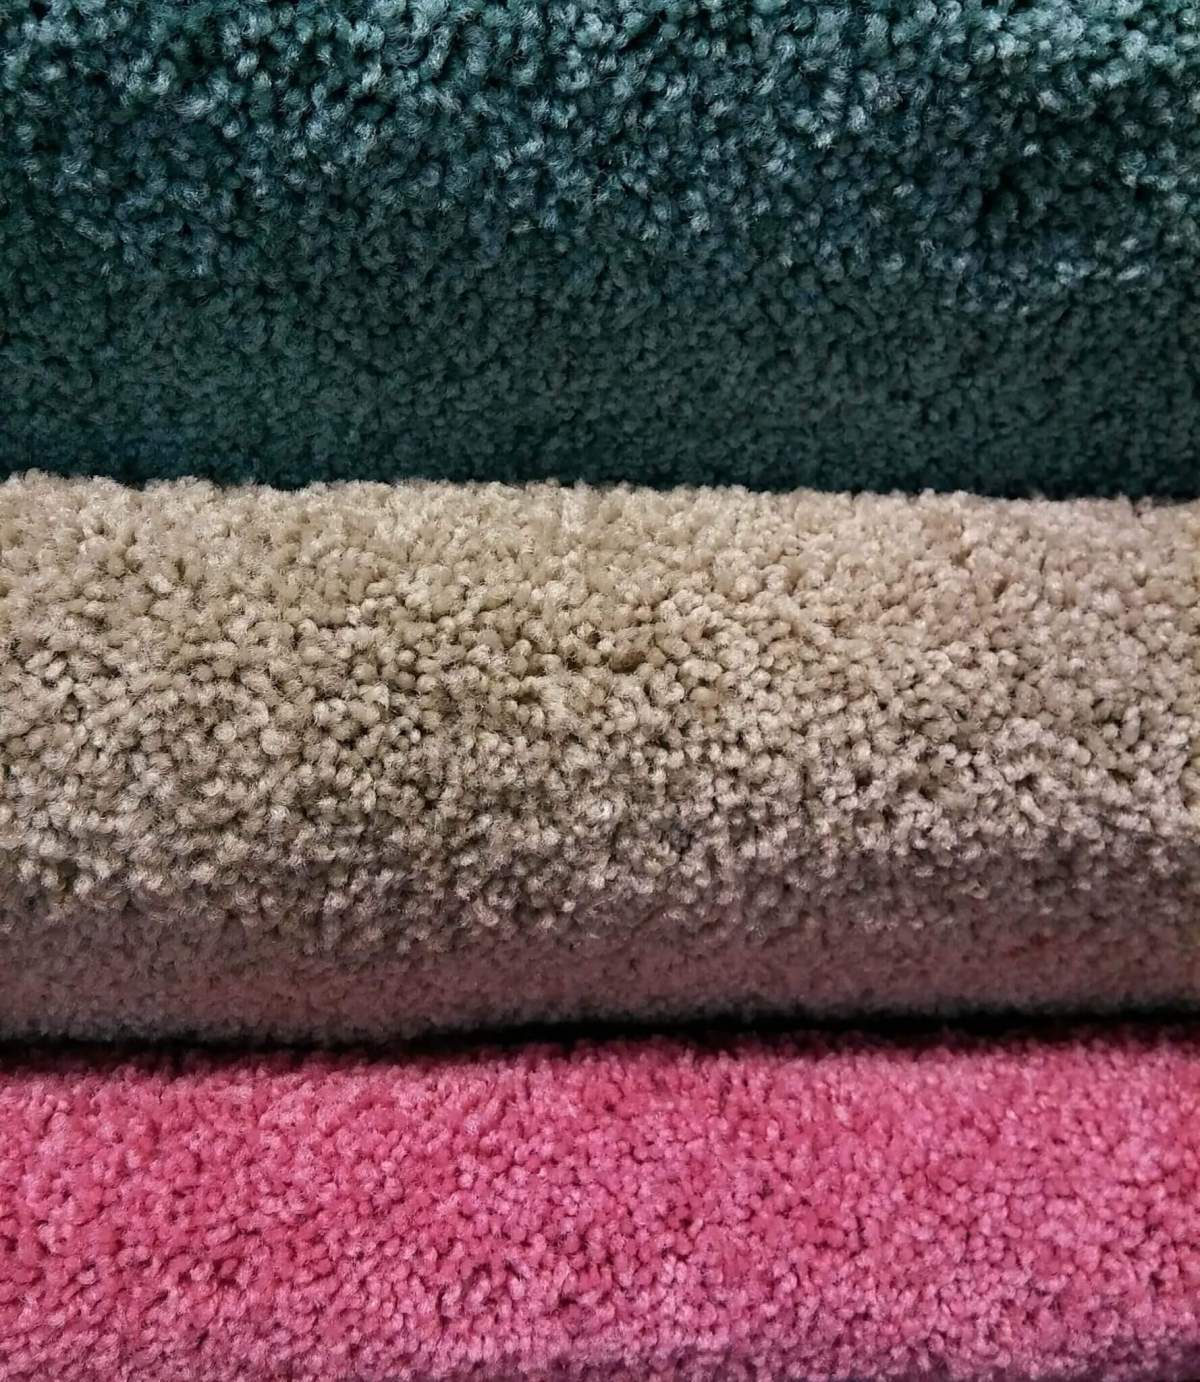 carpet-Types | DIY Choosing the Right Carpet or Floor Coverings